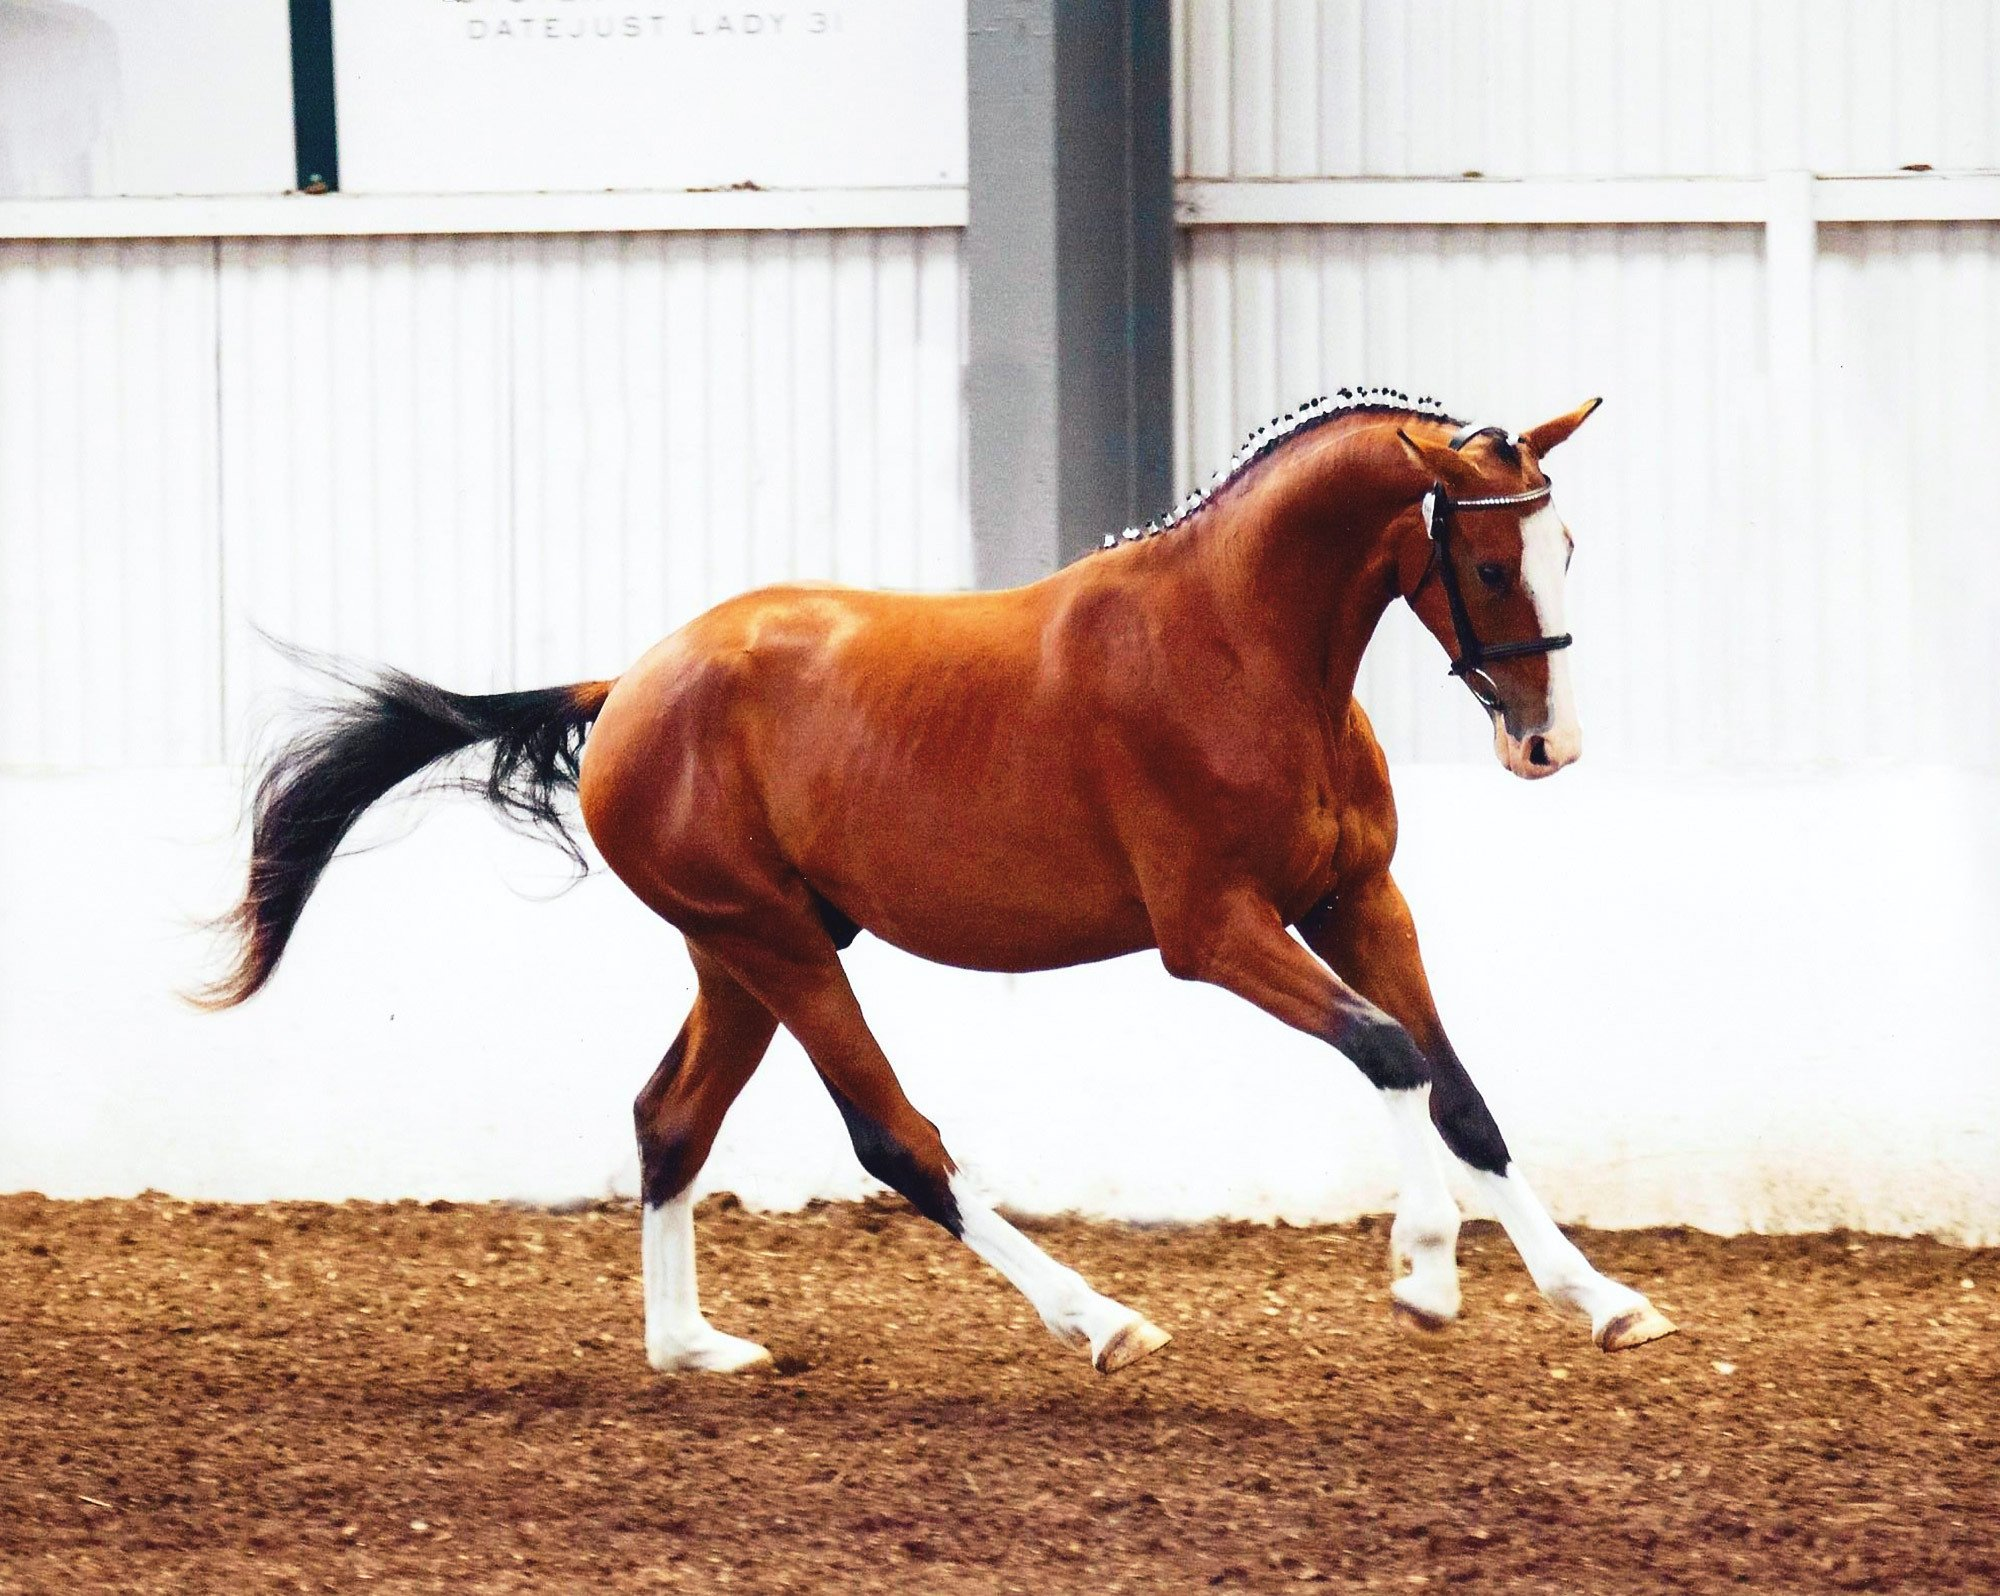 A beautiful horse in one of the best stables in Cheshire